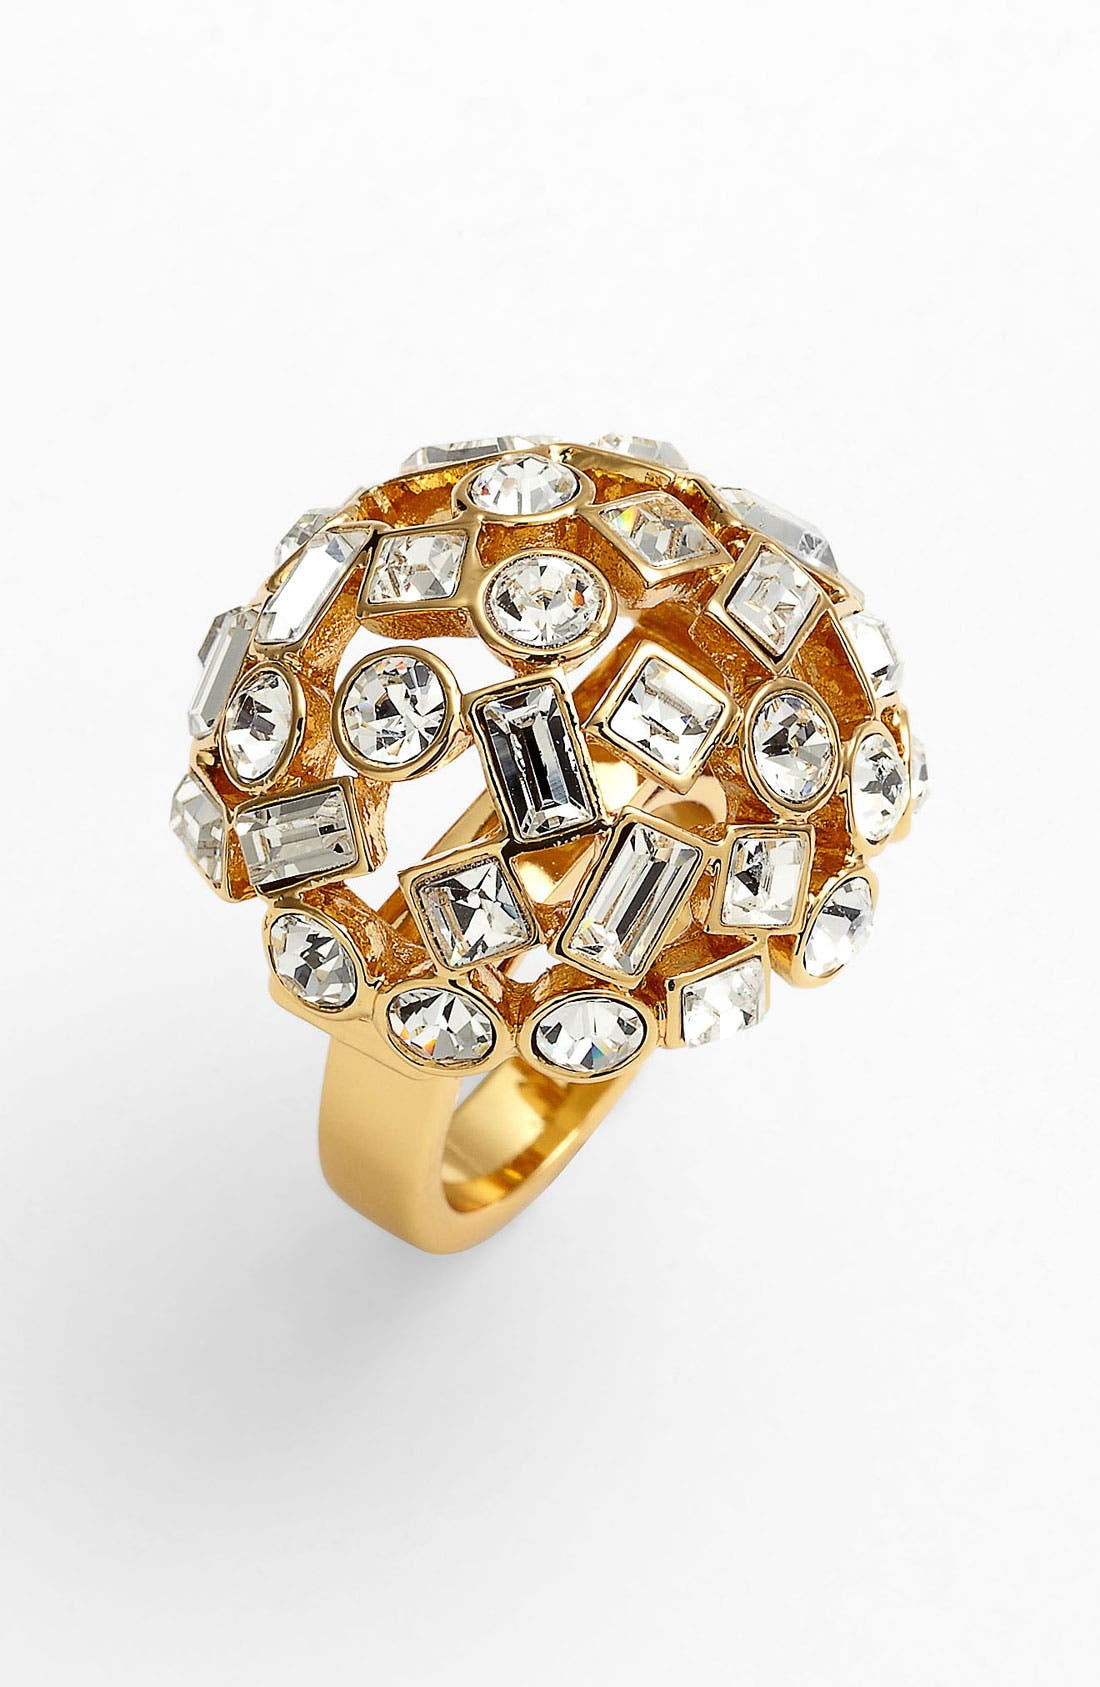 Main Image - kate spade new york 'kaleidoball' dome ring